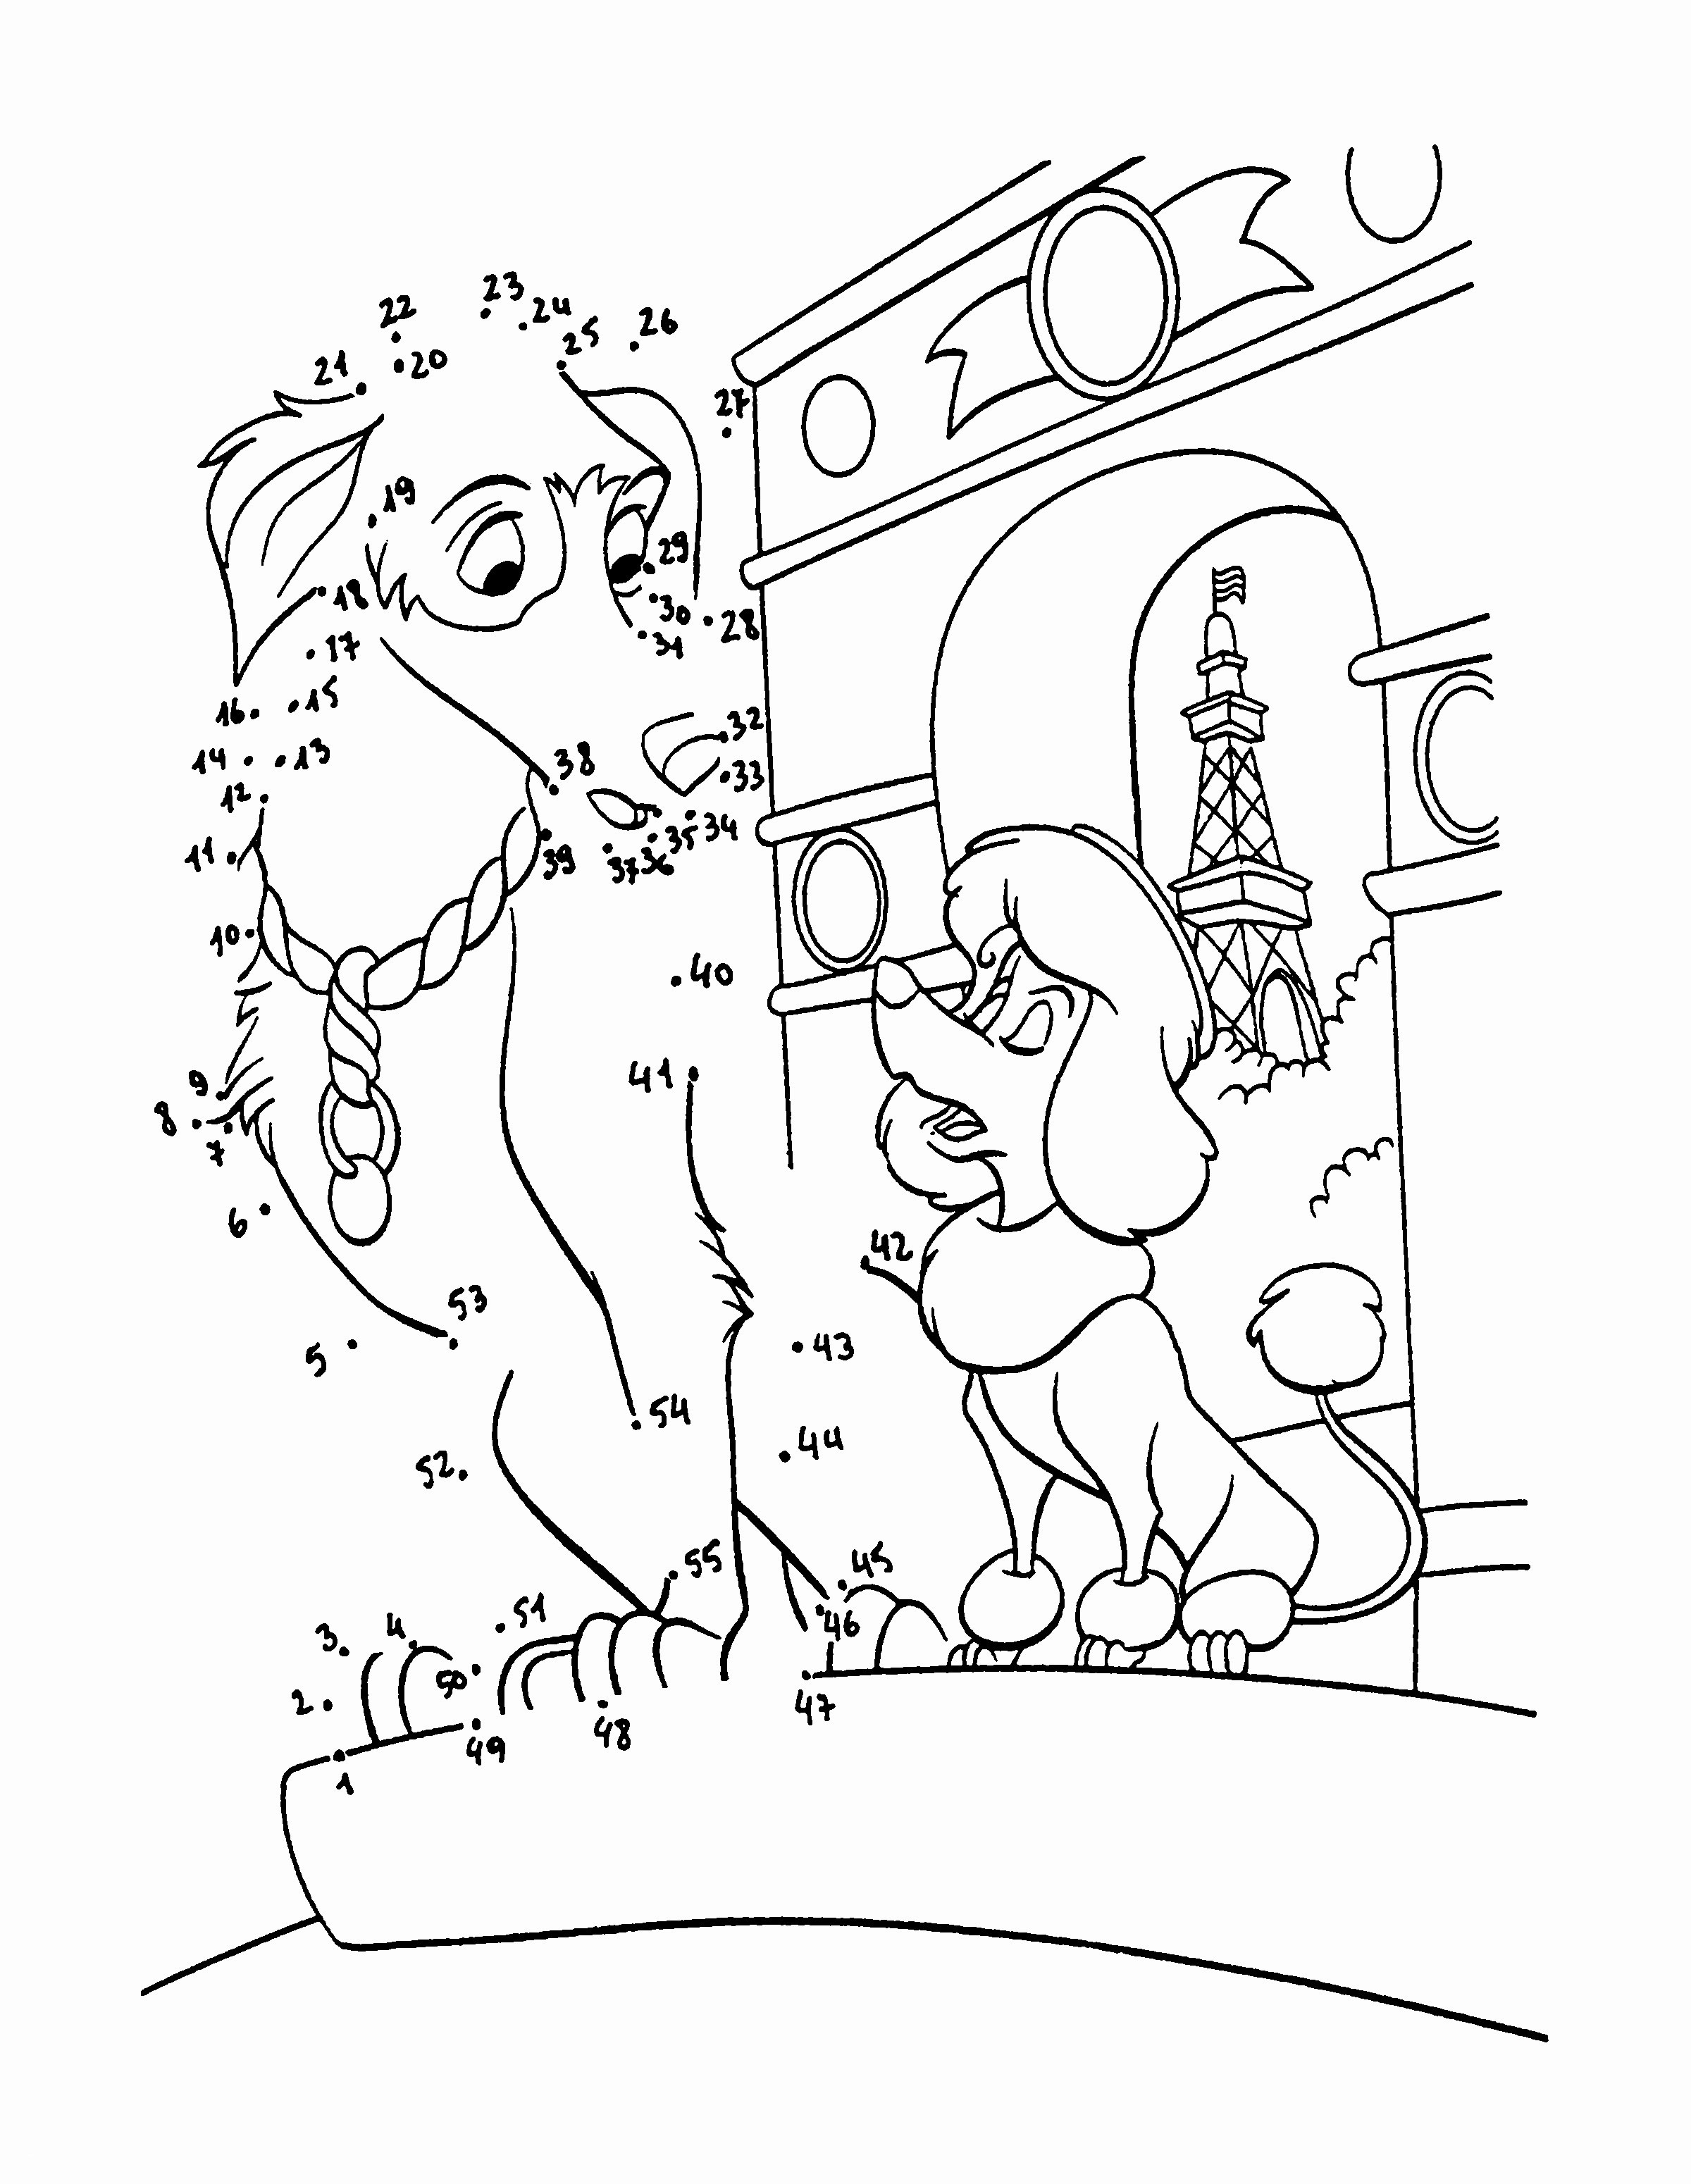 dentist coloring pages Download-Tooth Coloring Page Make A Coloring Page From A Luxury Dental Coloring Pages 14-c